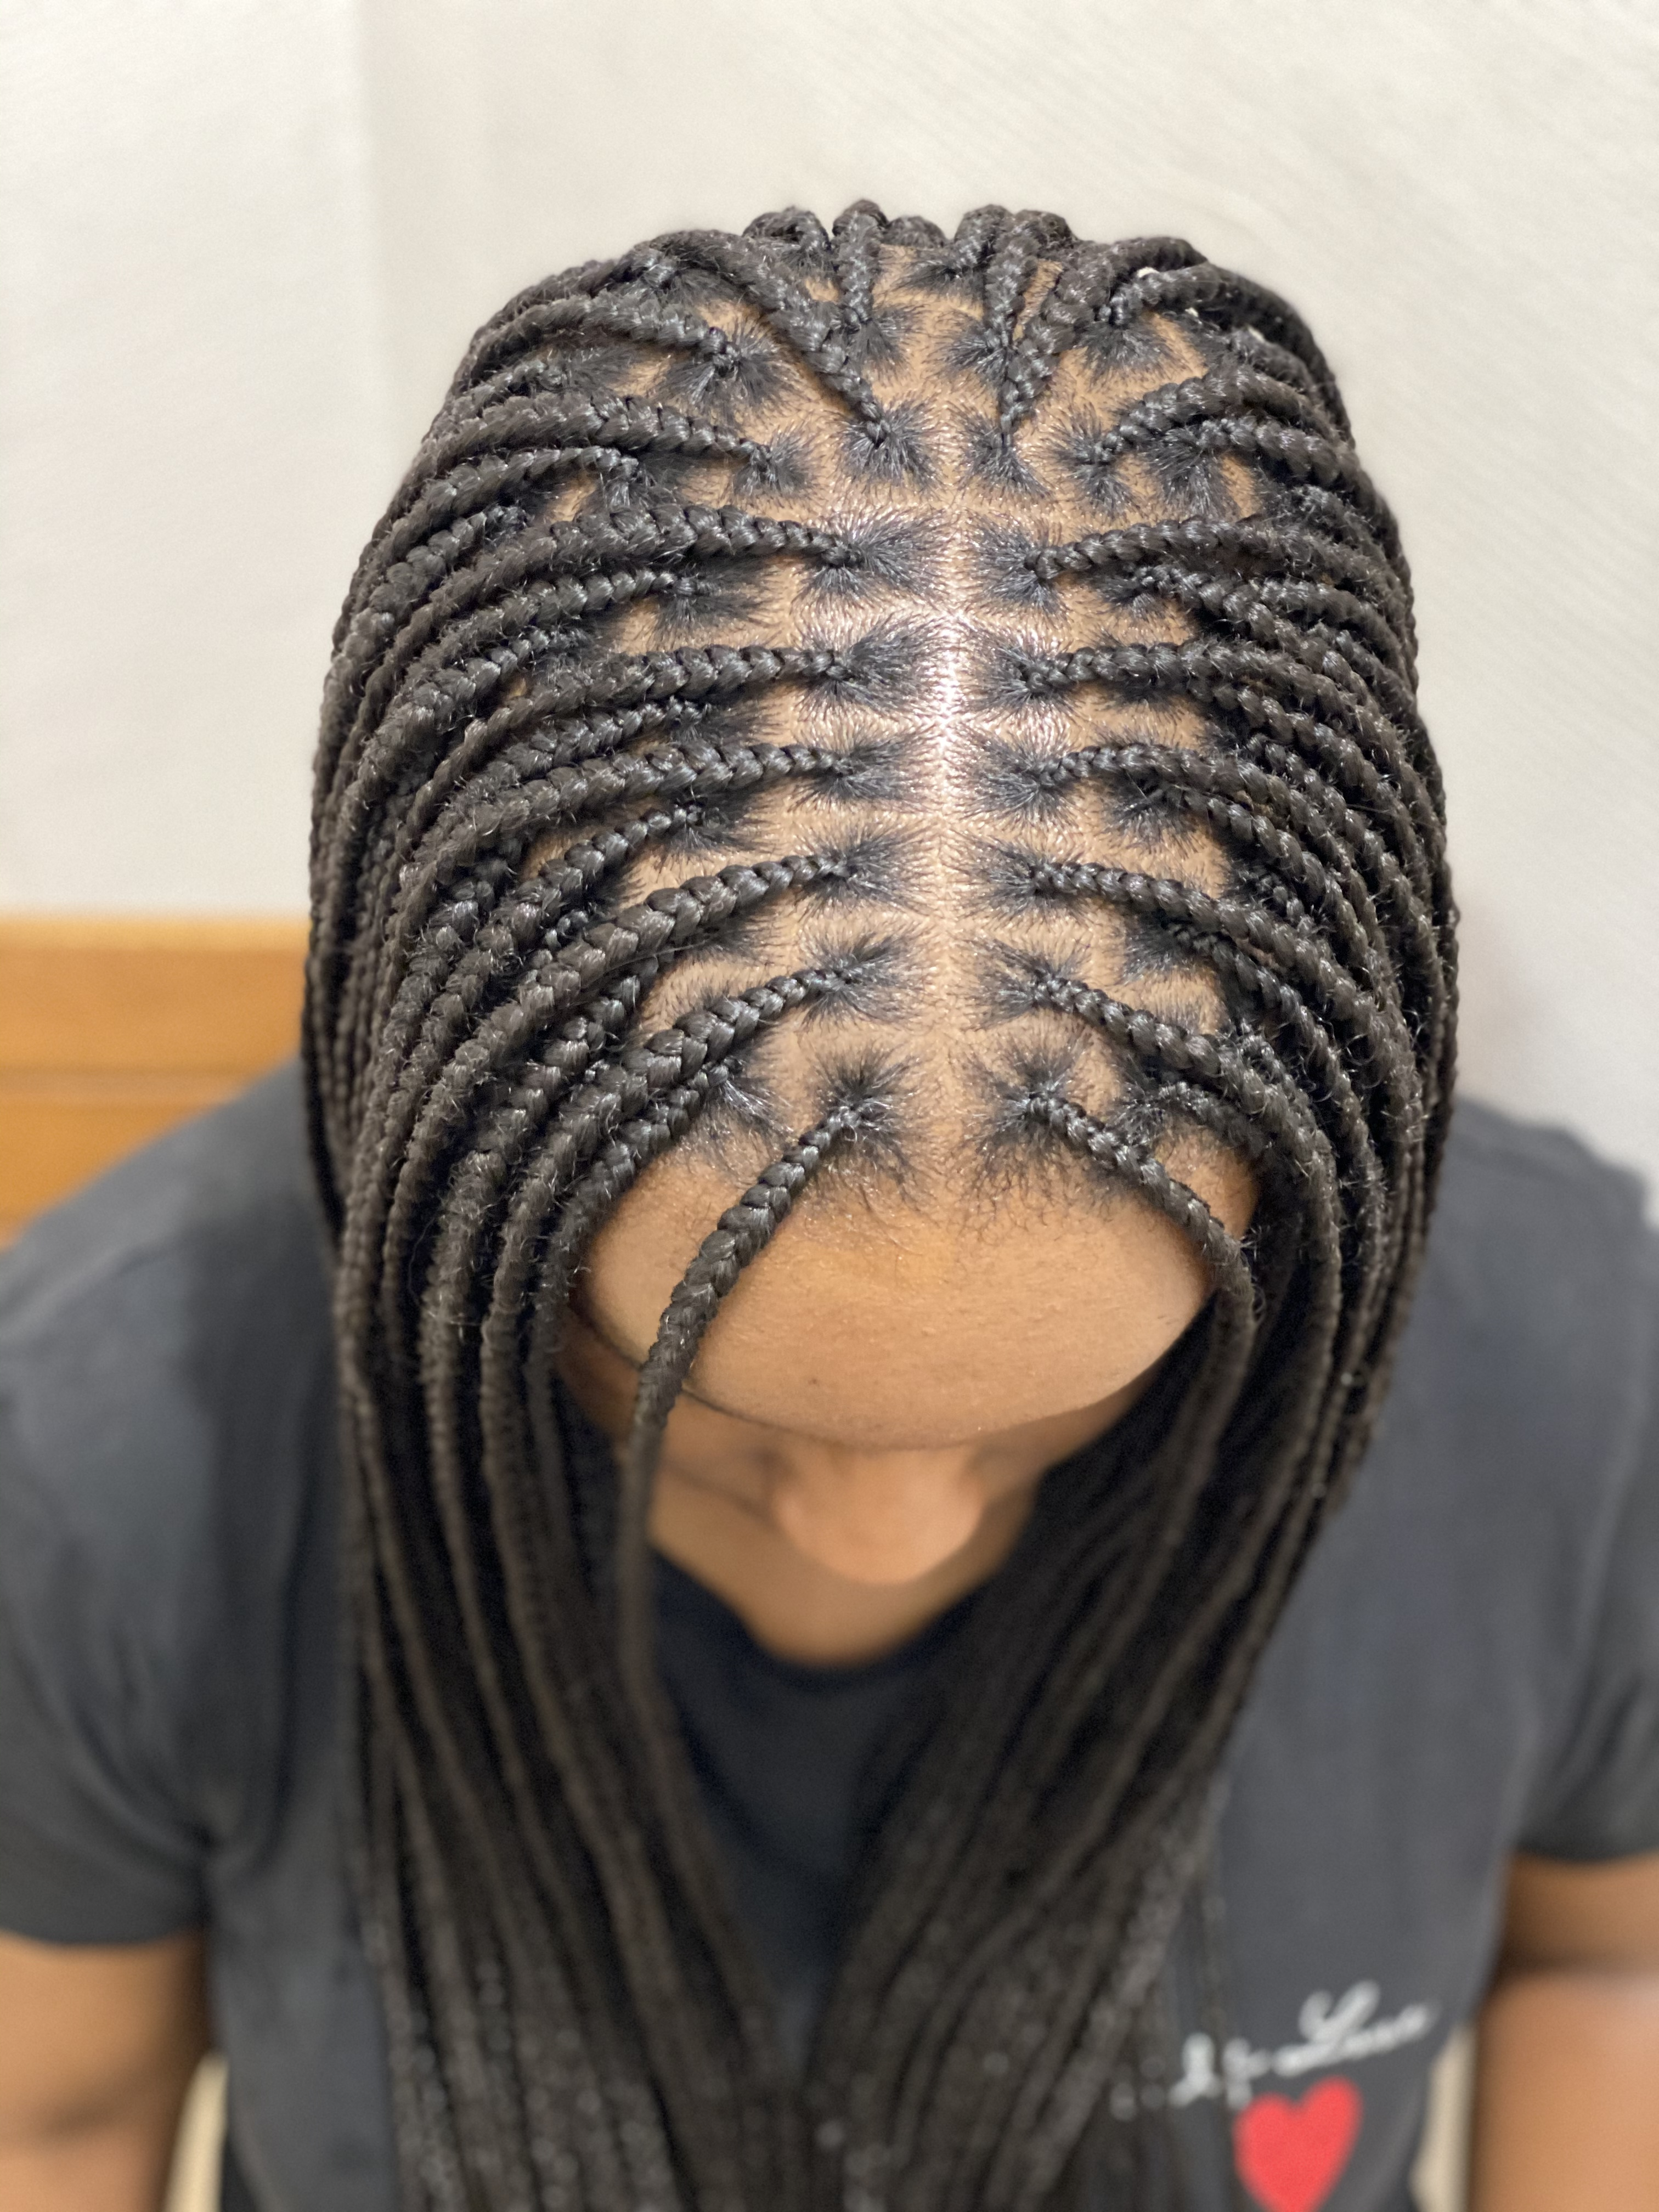 salon de coiffure afro tresse tresses box braids crochet braids vanilles tissages paris 75 77 78 91 92 93 94 95 OVGFNMIN